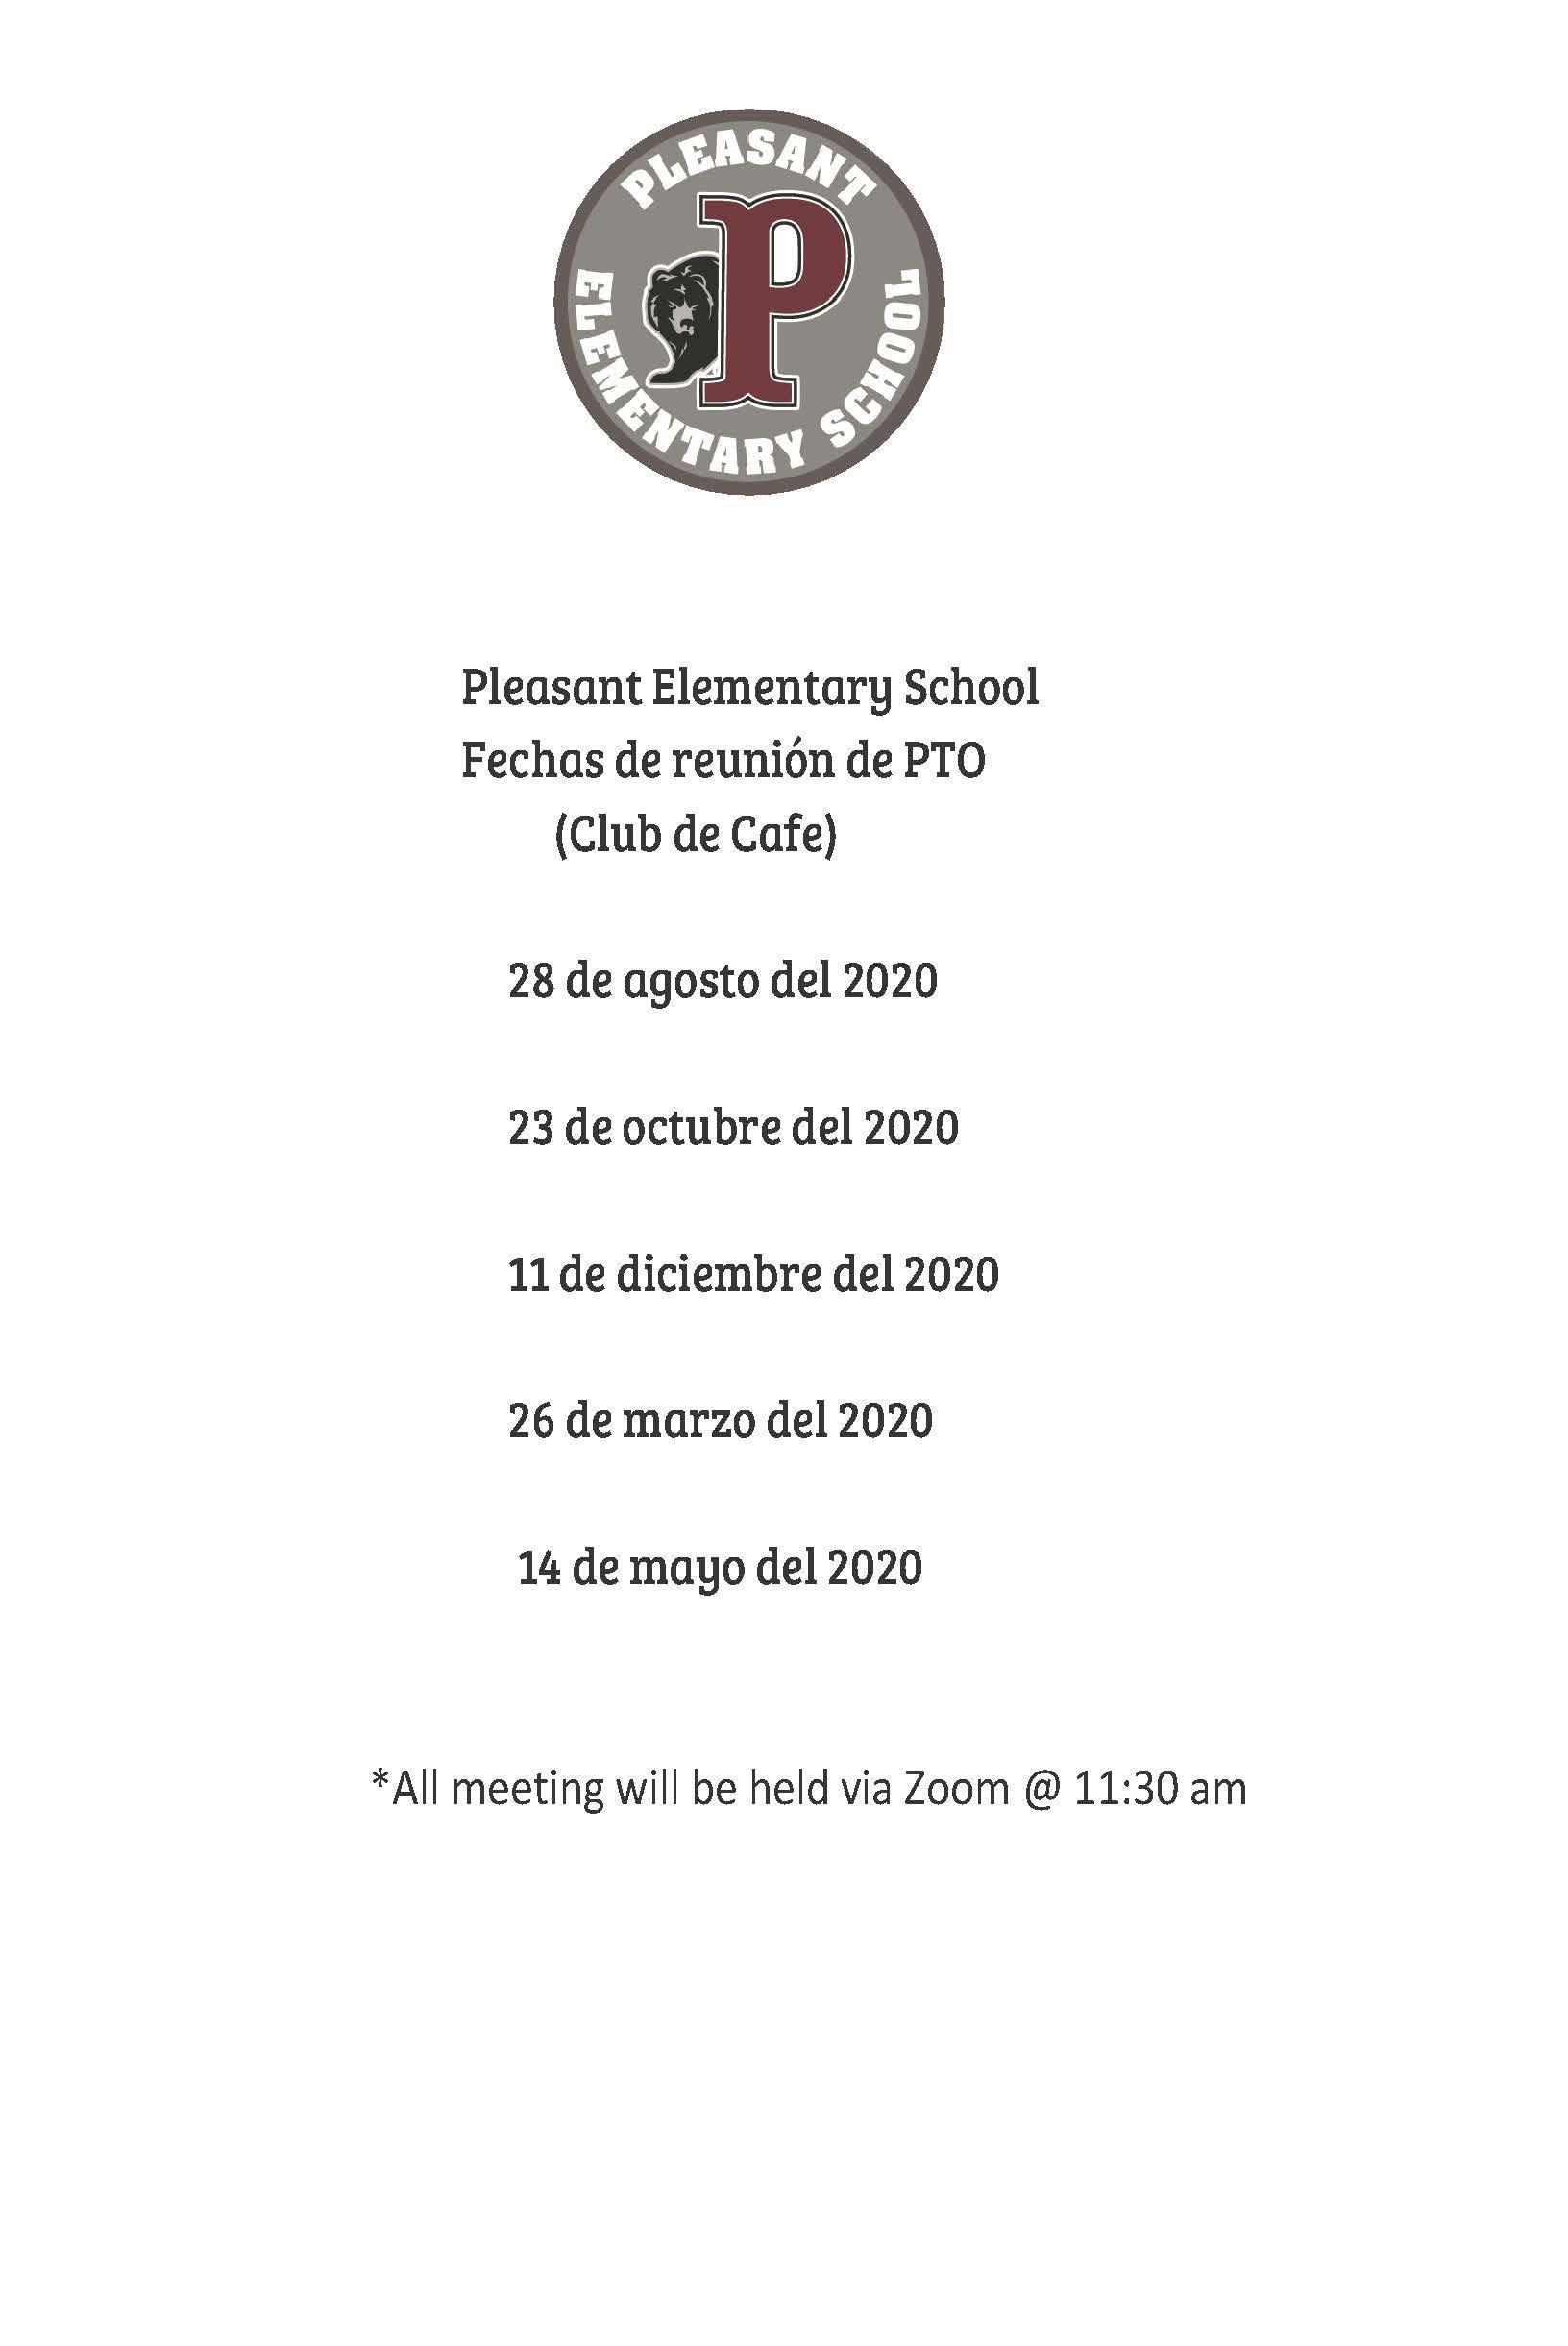 PTO meeting dates/times 20/21